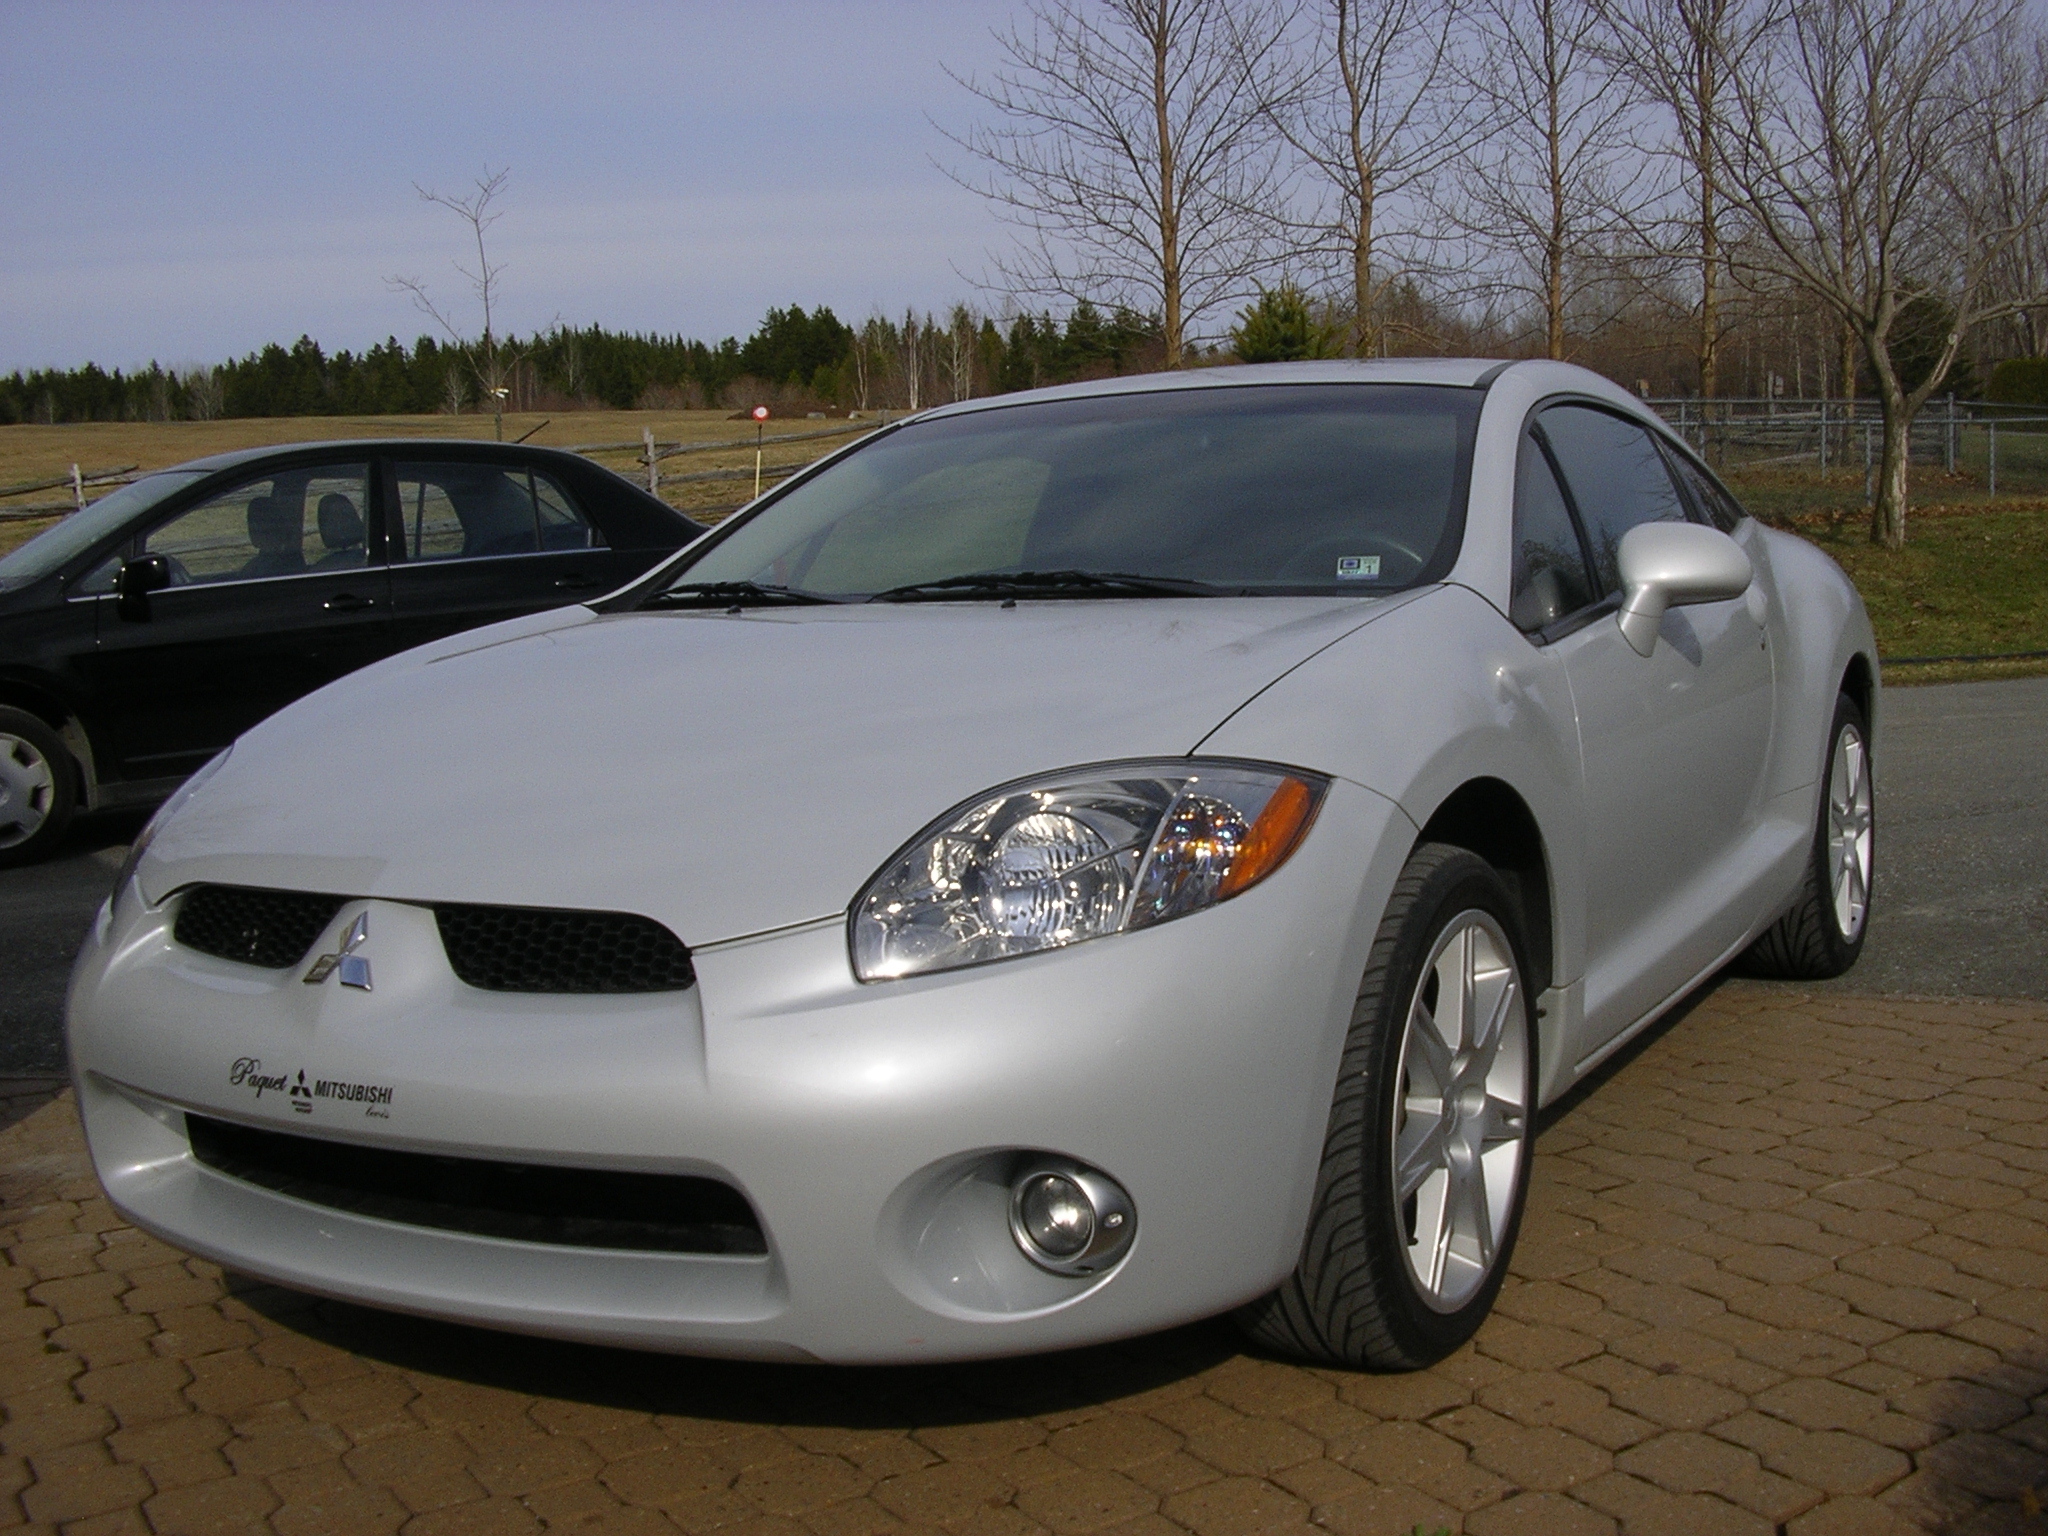 File:Mitsubishi Eclipse GT V6 (2006).jpg - Wikimedia Commons